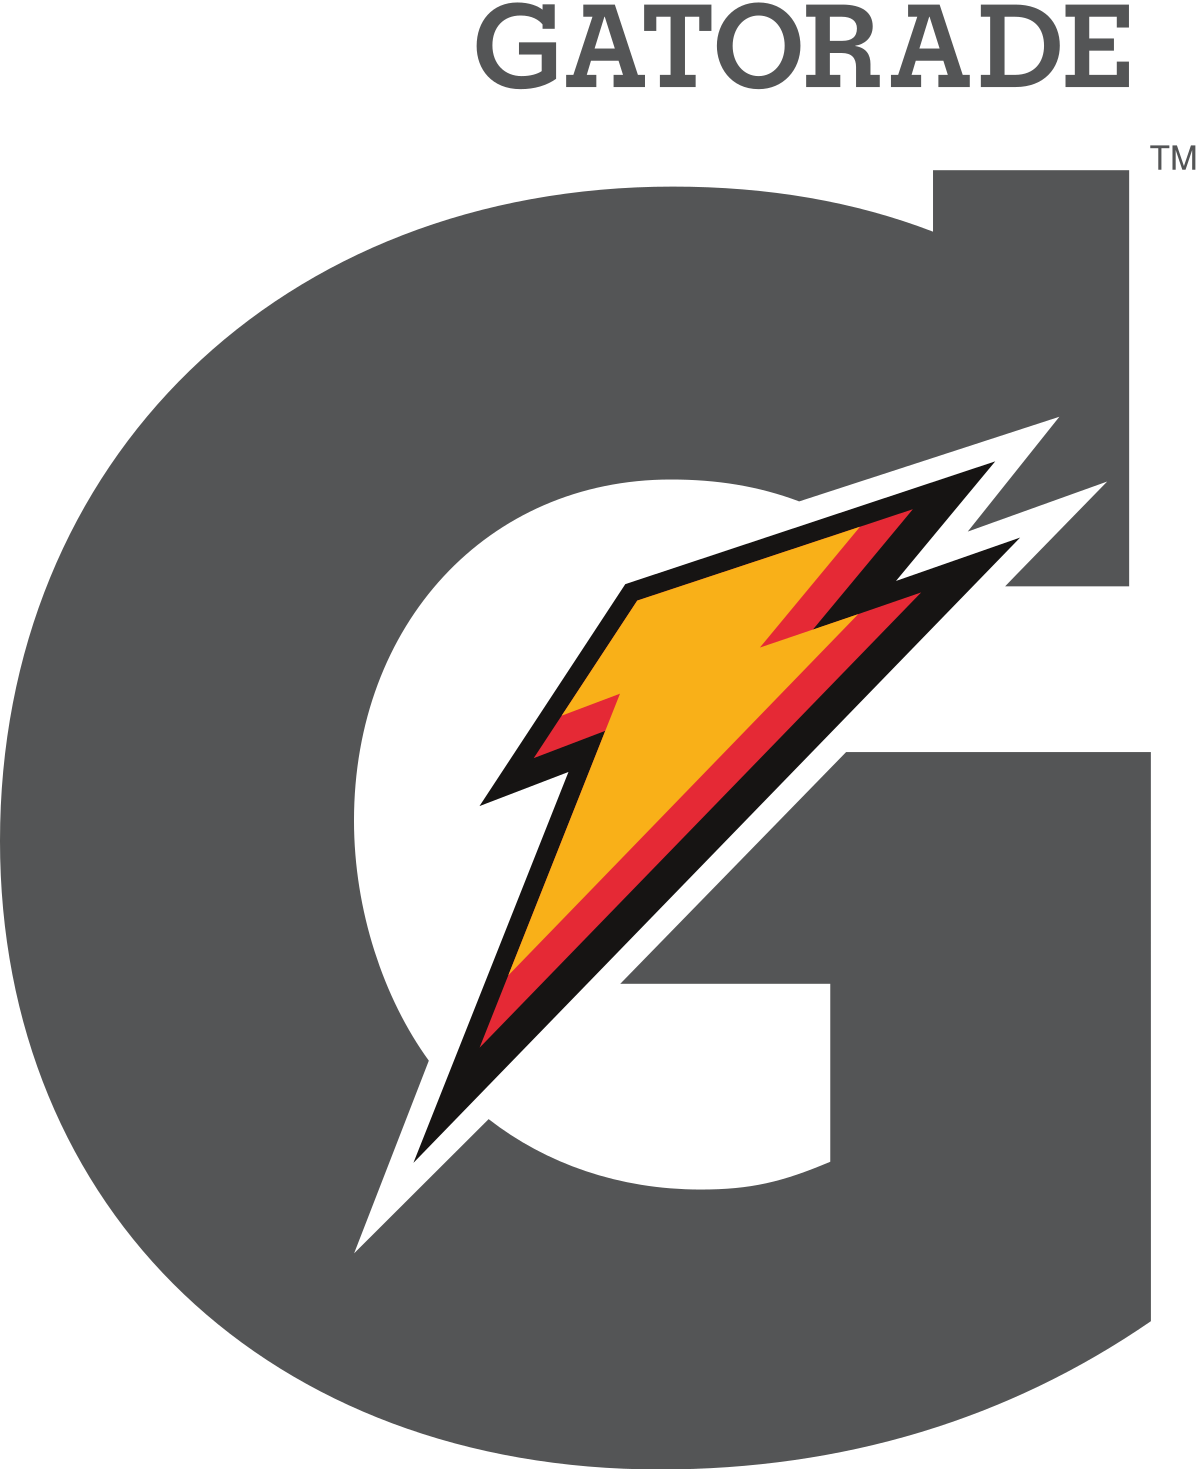 Gatorade transparent history. Wikipedia